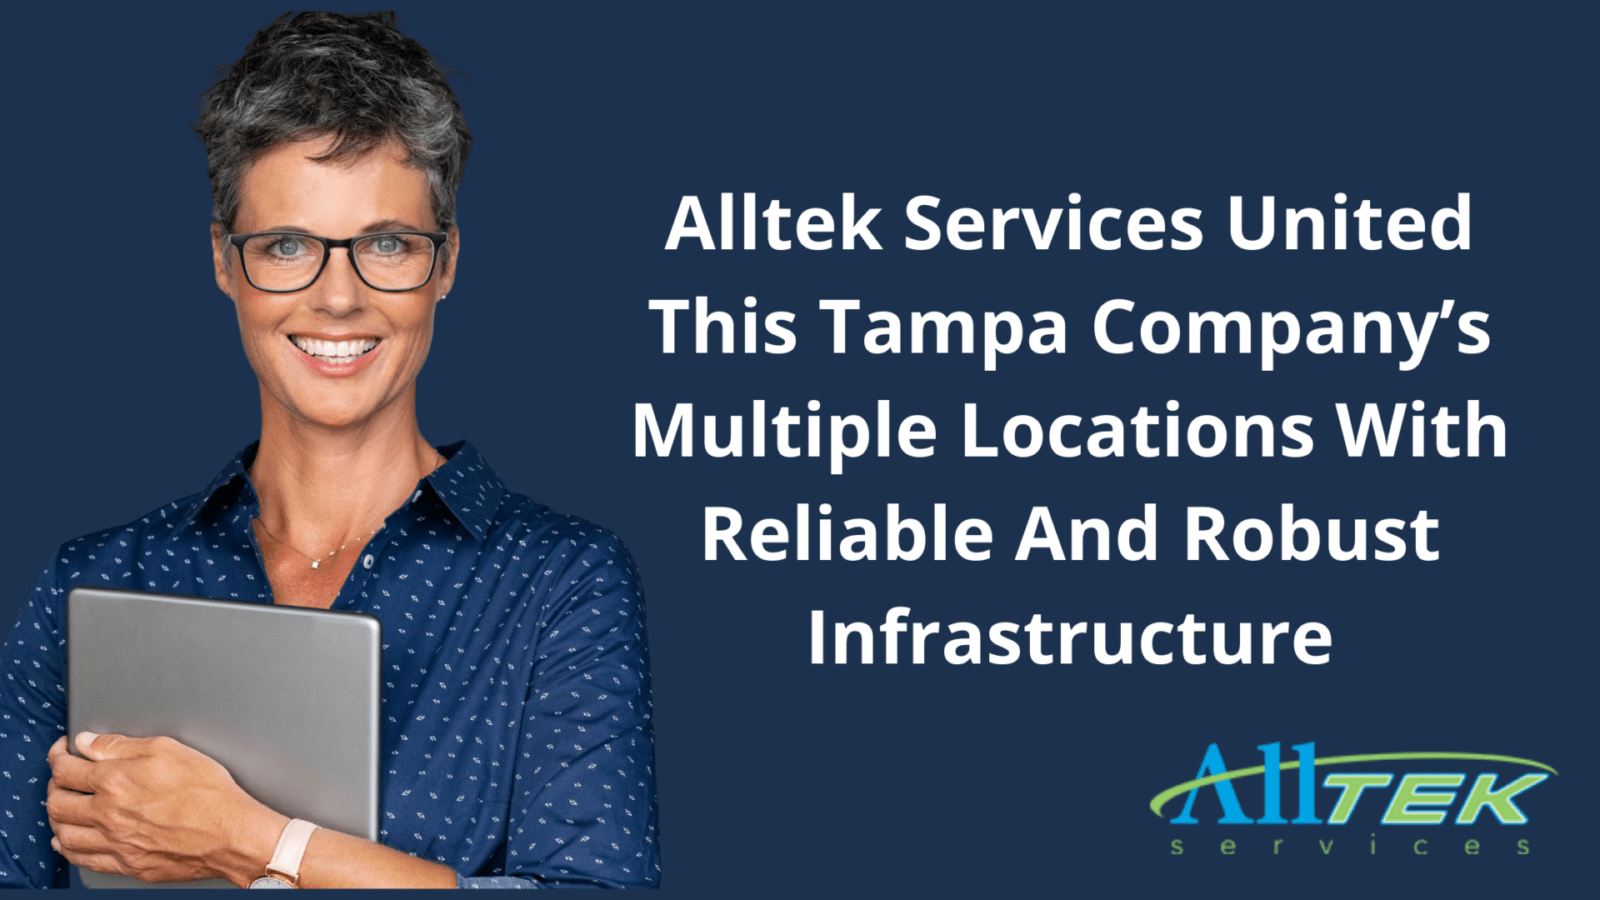 Alltek Services United This Tampa Company's Multiple Locations With Reliable And Robust Infrastructure